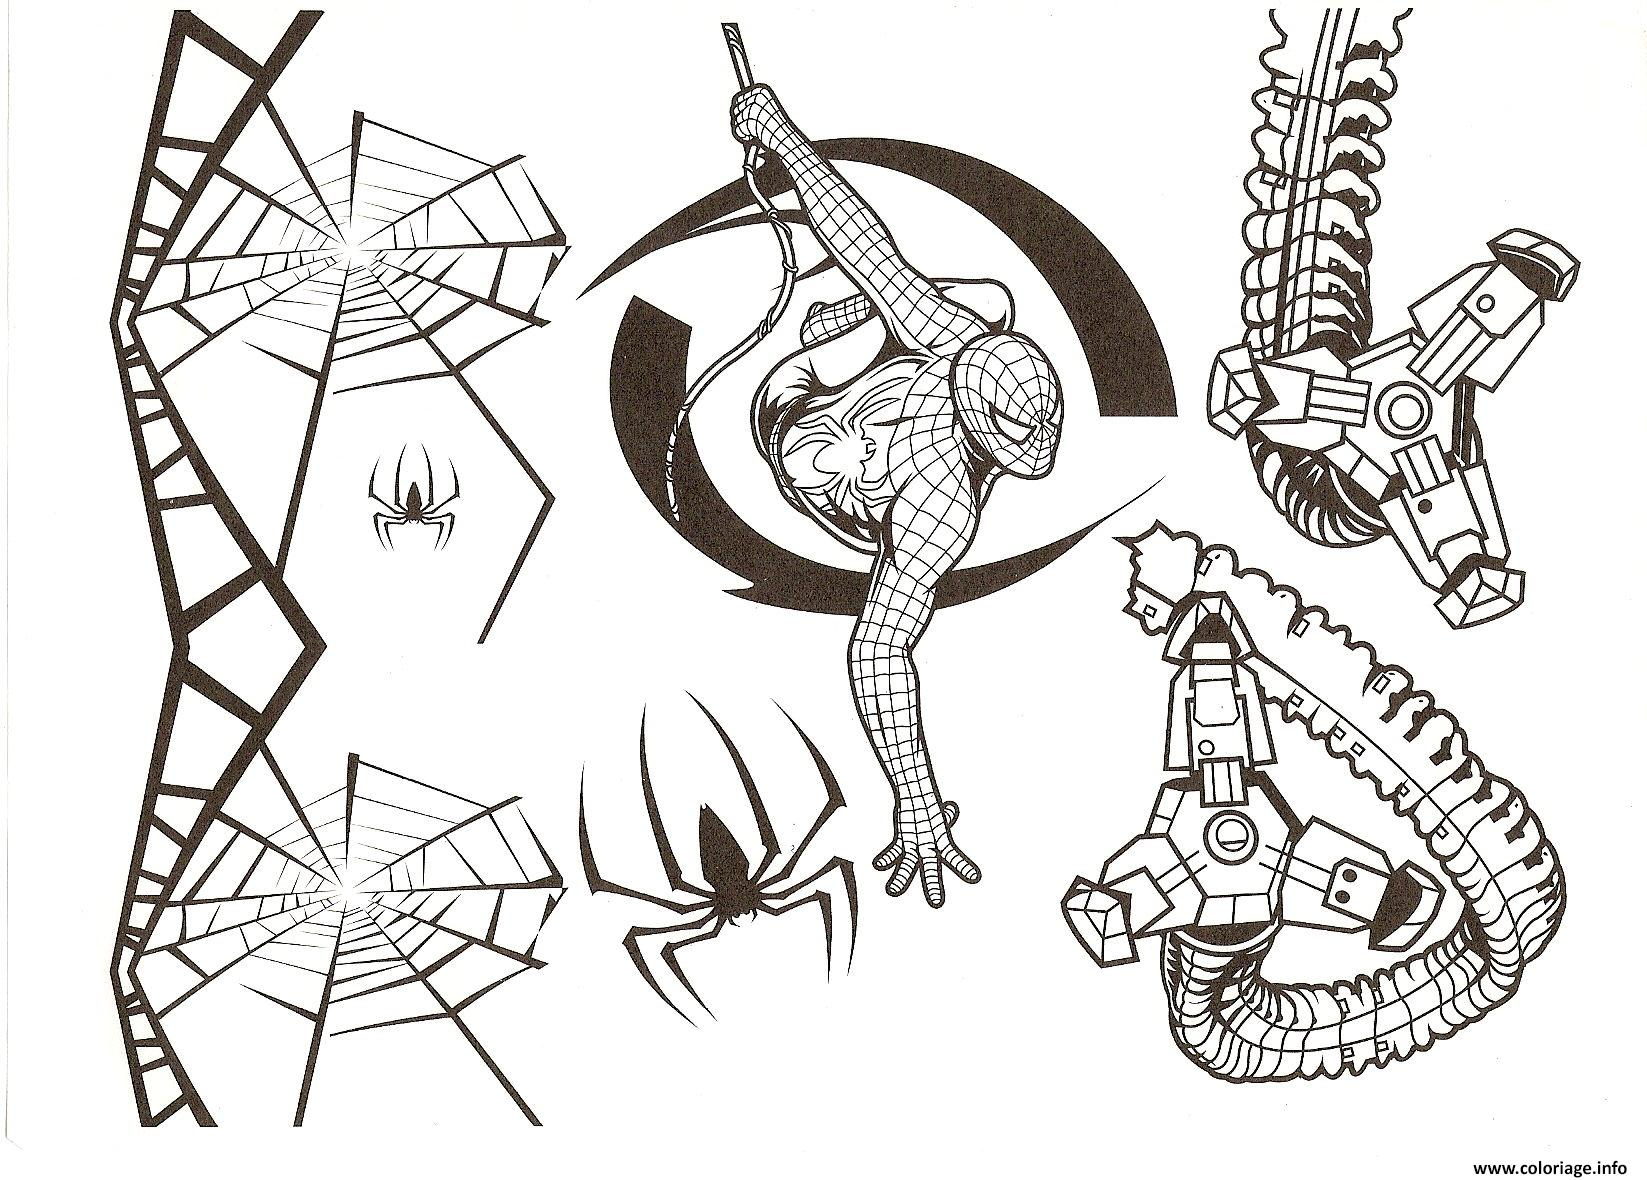 Coloriage spiderman spiders dessin - Dessin dessin ...